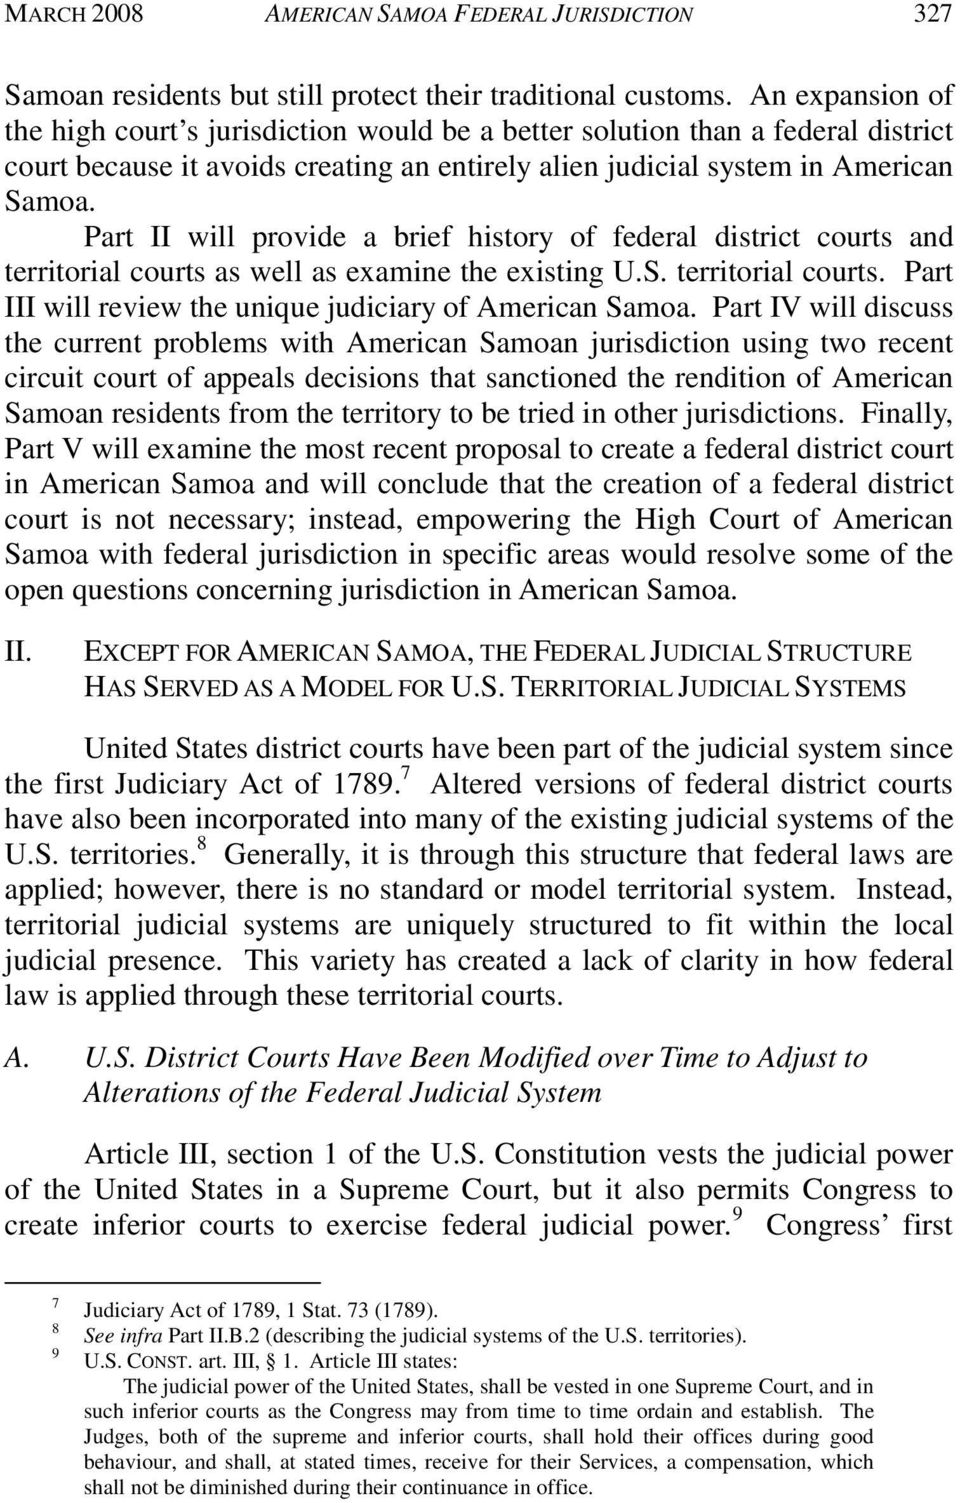 Part II will provide a brief history of federal district courts and territorial courts as well as examine the existing U.S. territorial courts. Part III will review the unique judiciary of American Samoa.